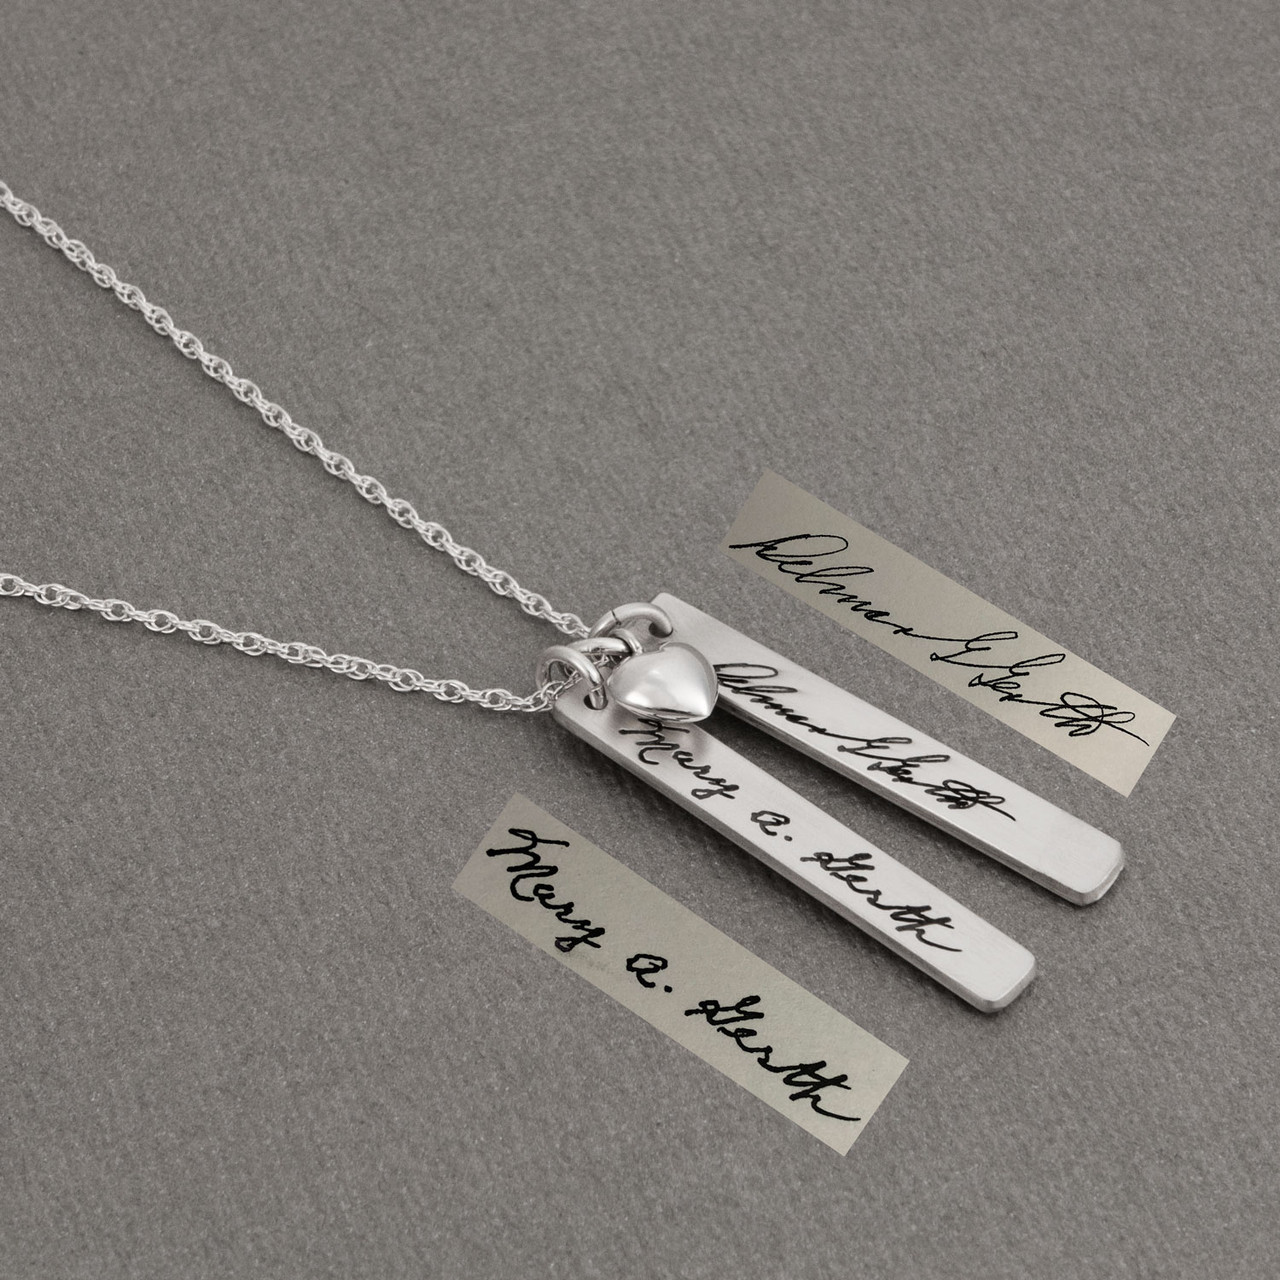 Custom Handwriting Tag in sterling silver, with actual handwriting, on gray background, shown with original handwriting